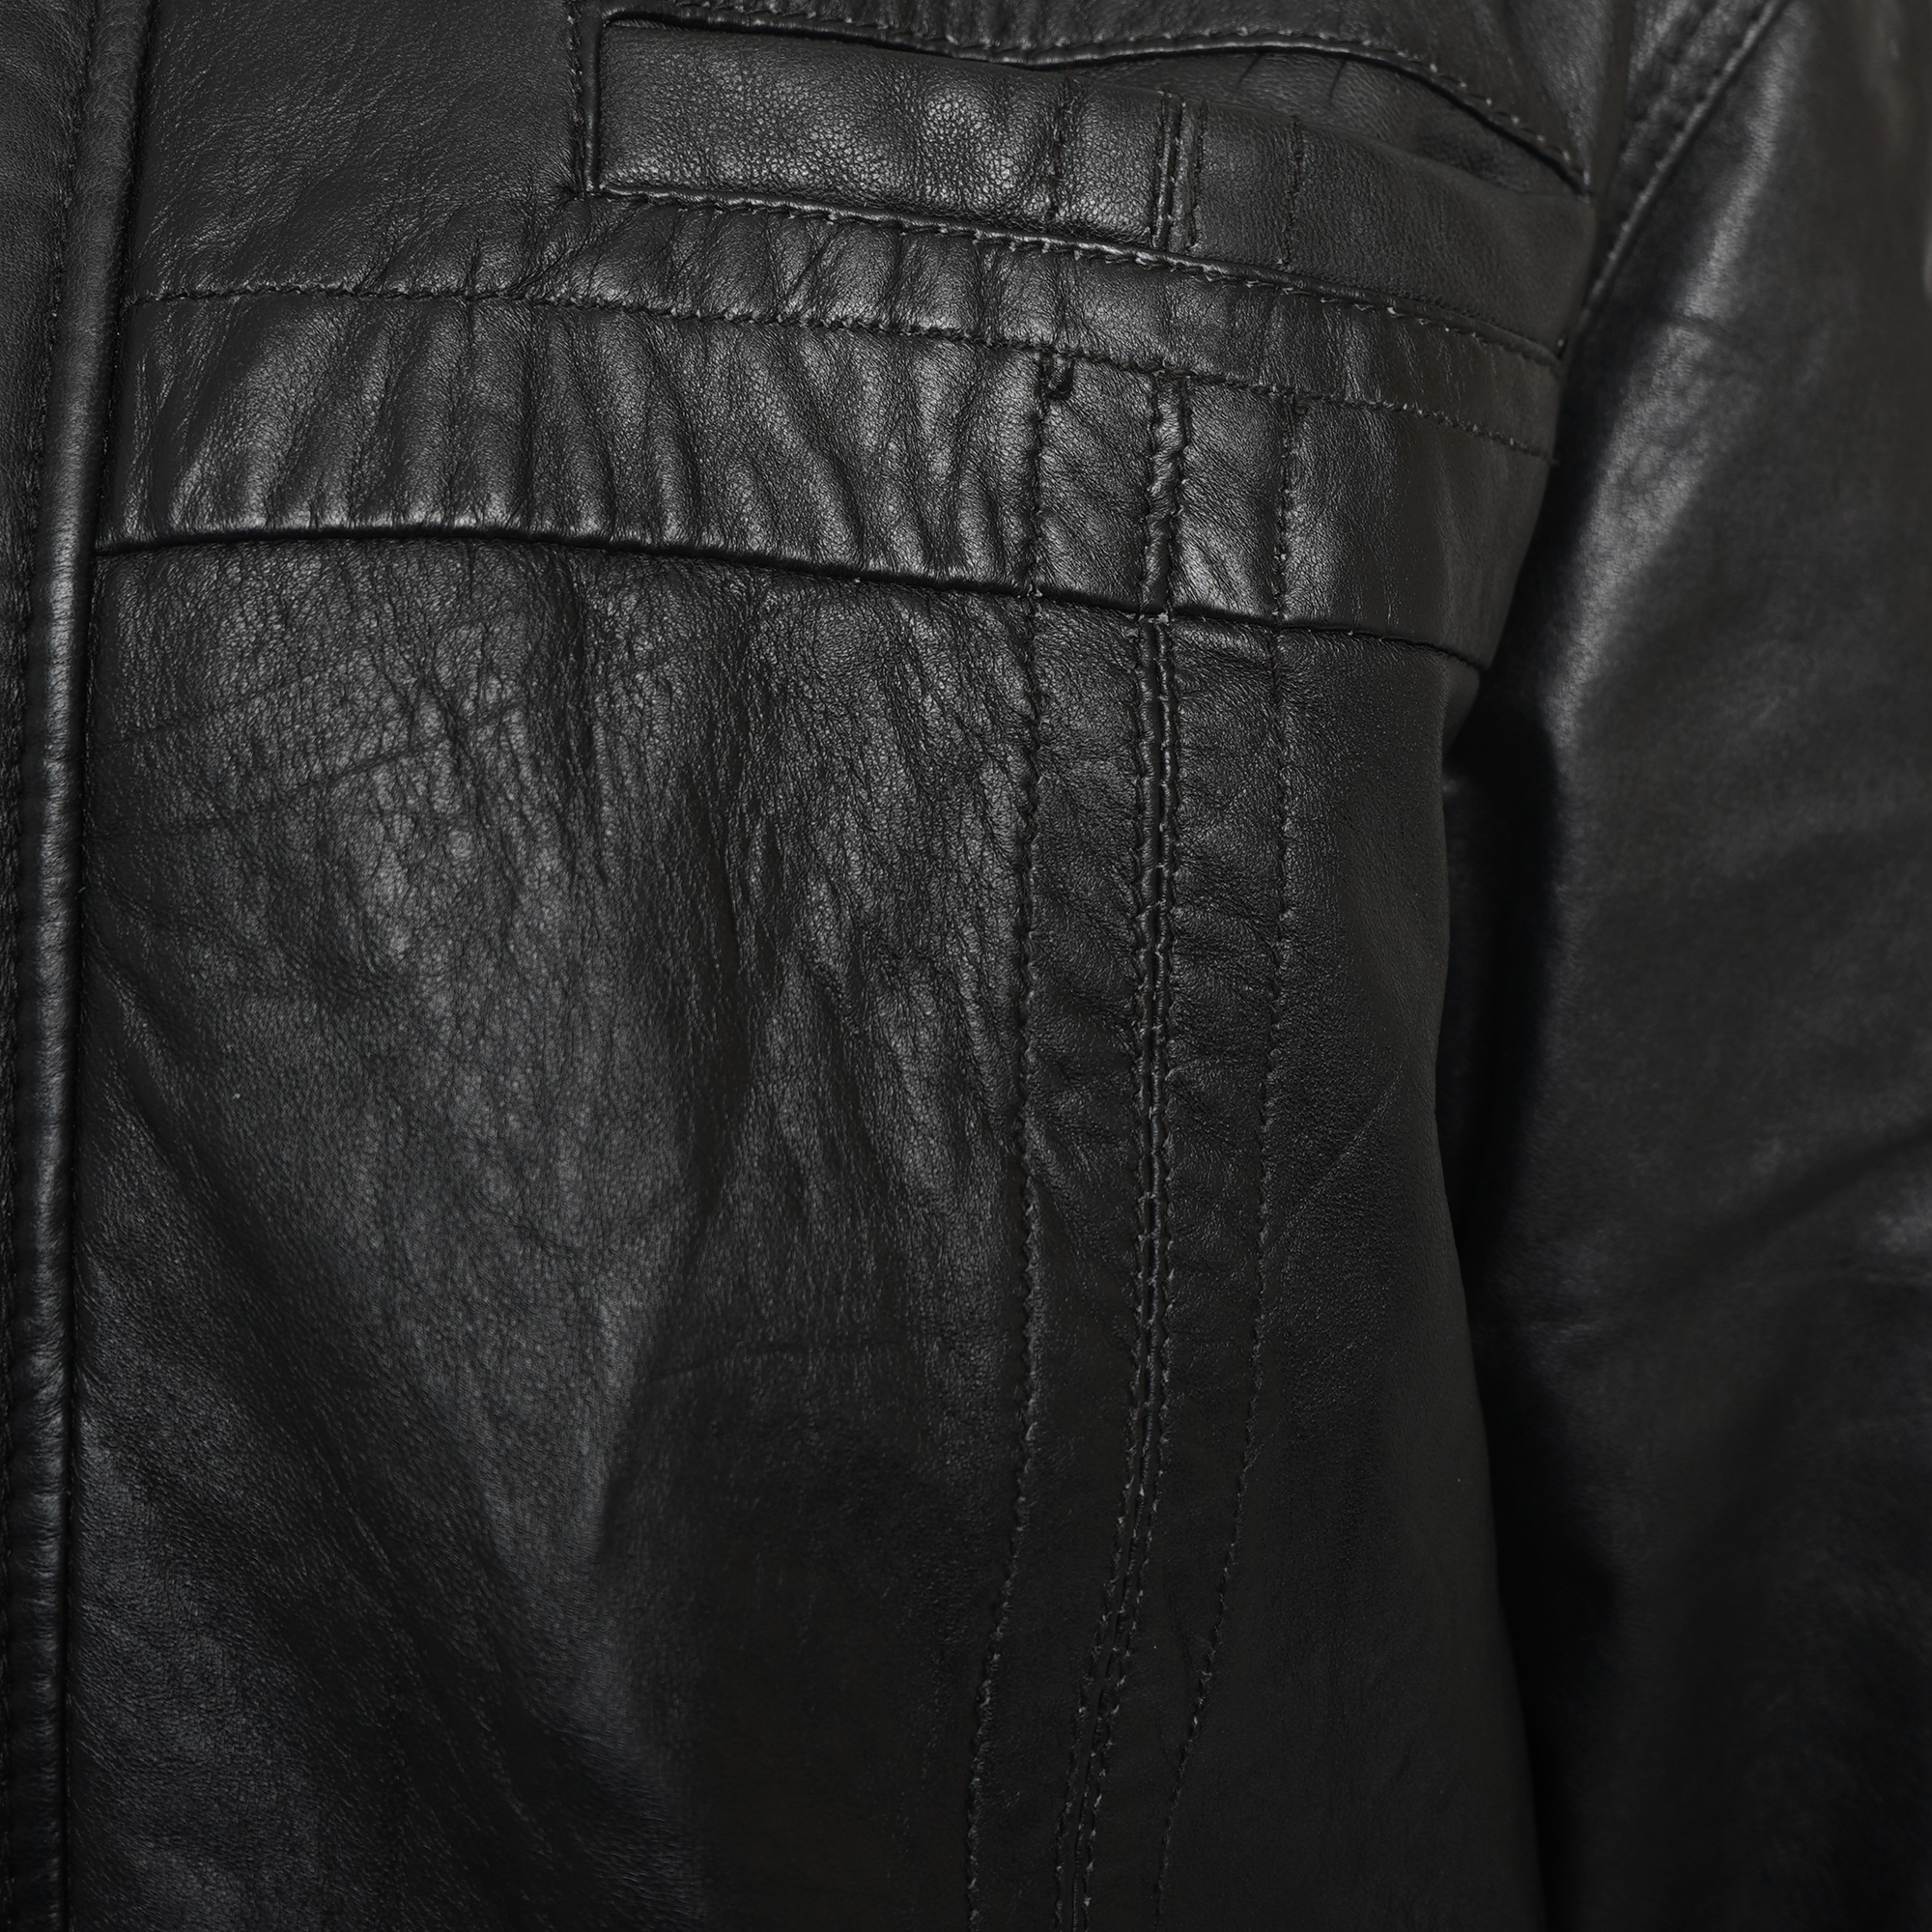 Approx. 800 x Men's Classic Heavy Duty Leather Jacket - Image 3 of 4